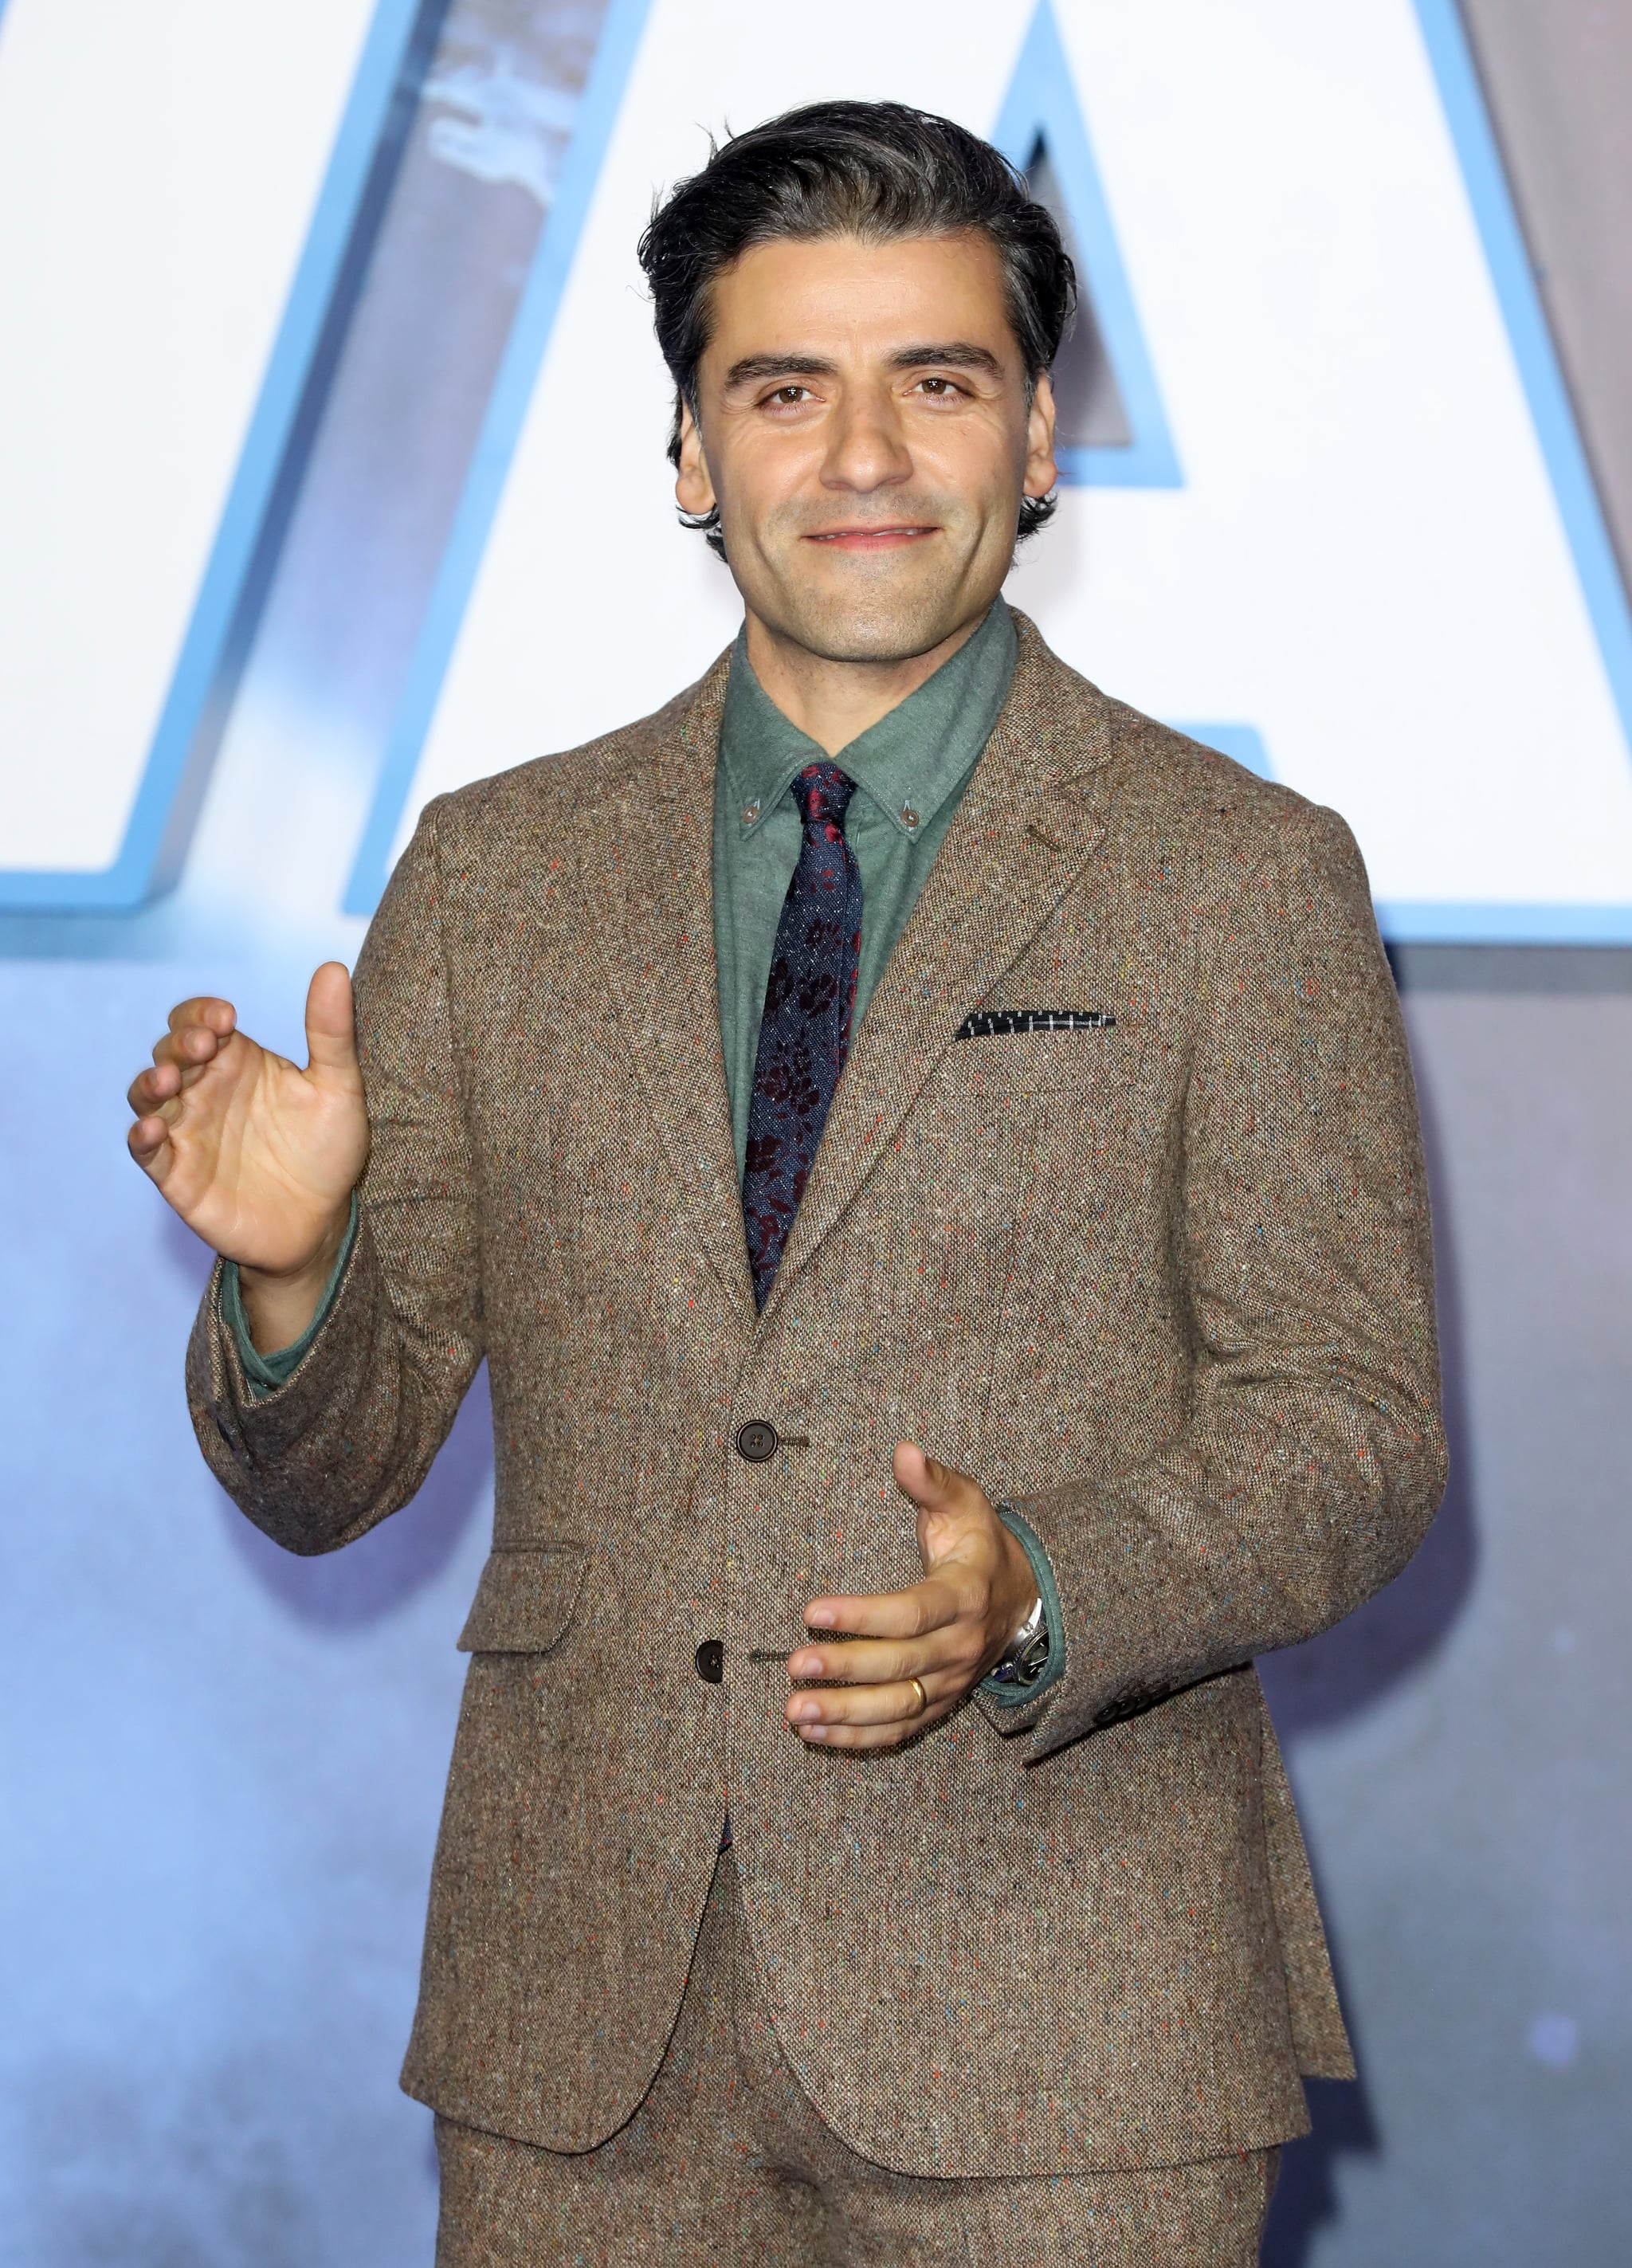 LONDON, ENGLAND - DECEMBER 18: Oscar Isaac attends the